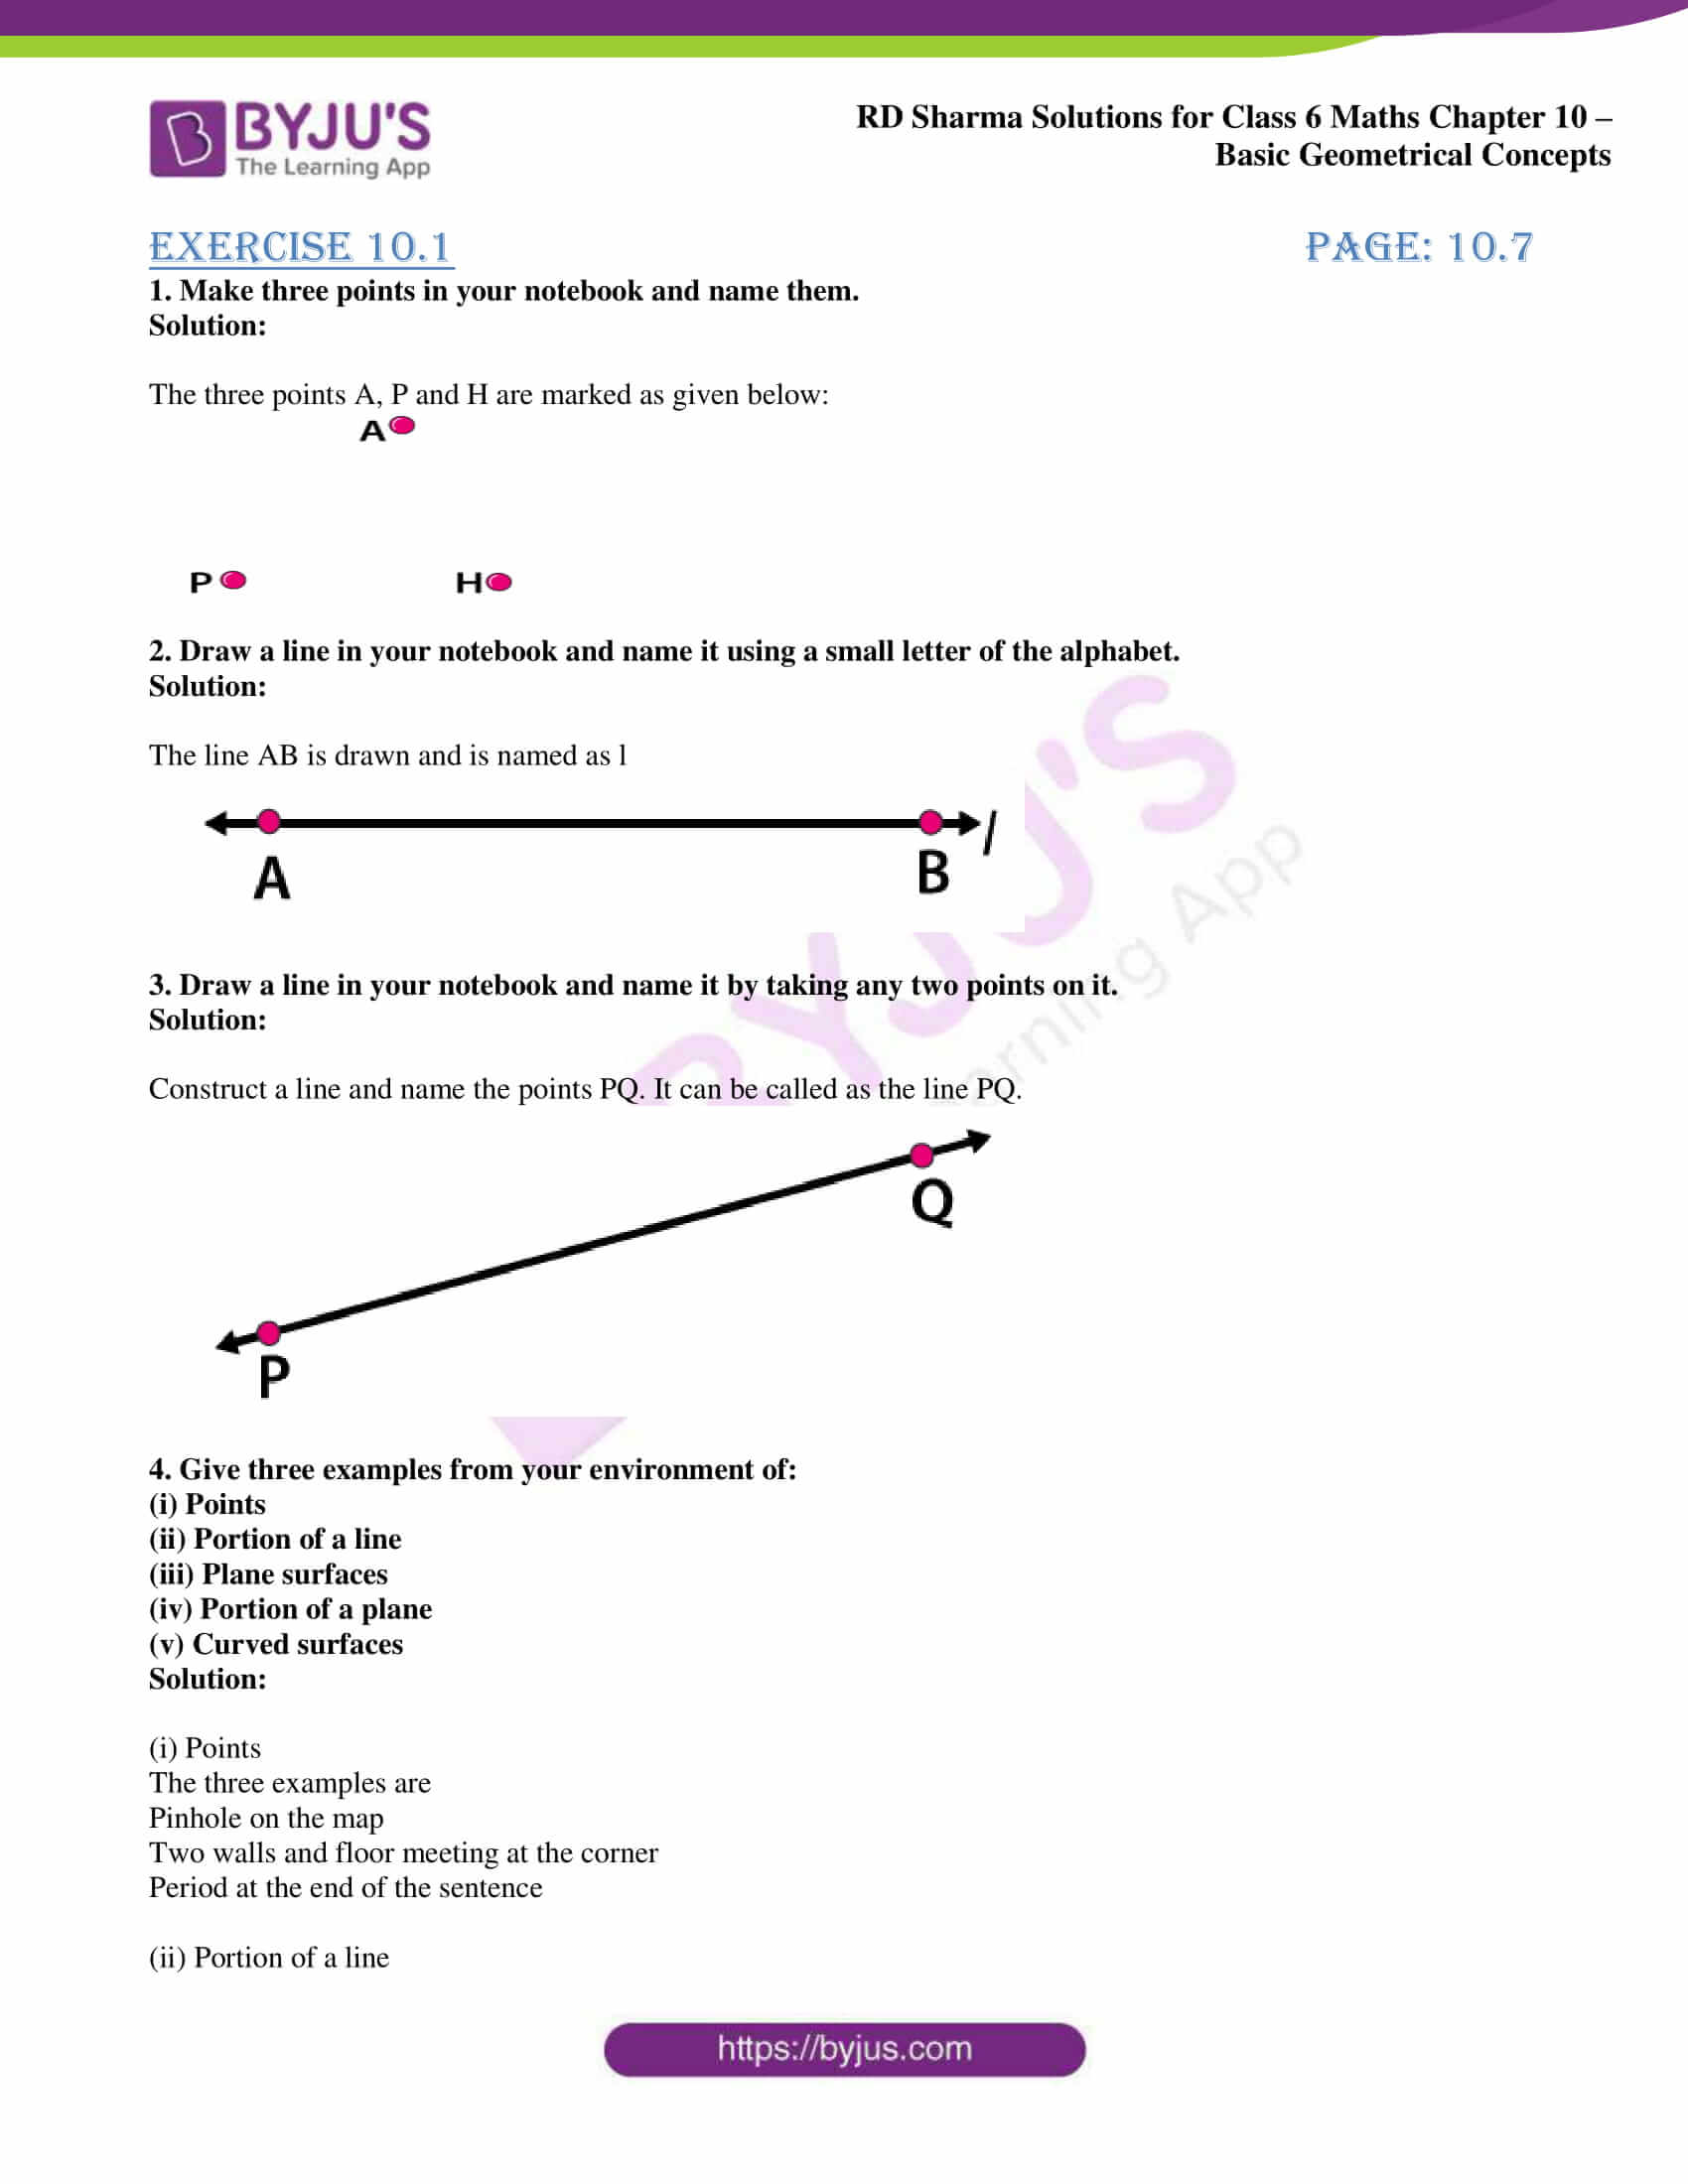 hight resolution of RD Sharma Solutions for Class 6 Chapter 10 Basic Geometrical Concepts PDF